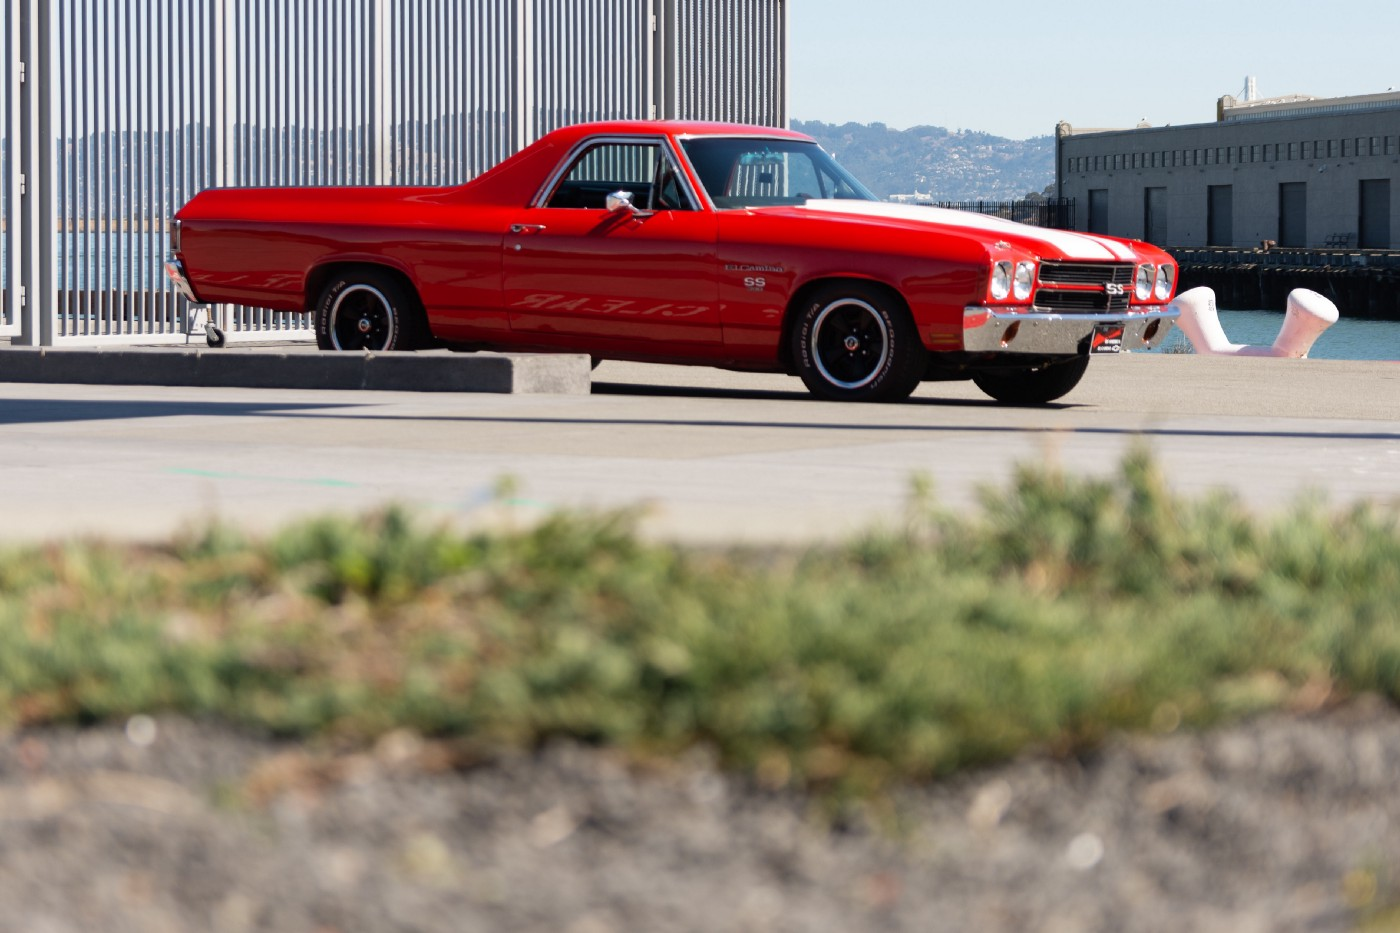 A red El Camino car in a parking lot on a sunny day